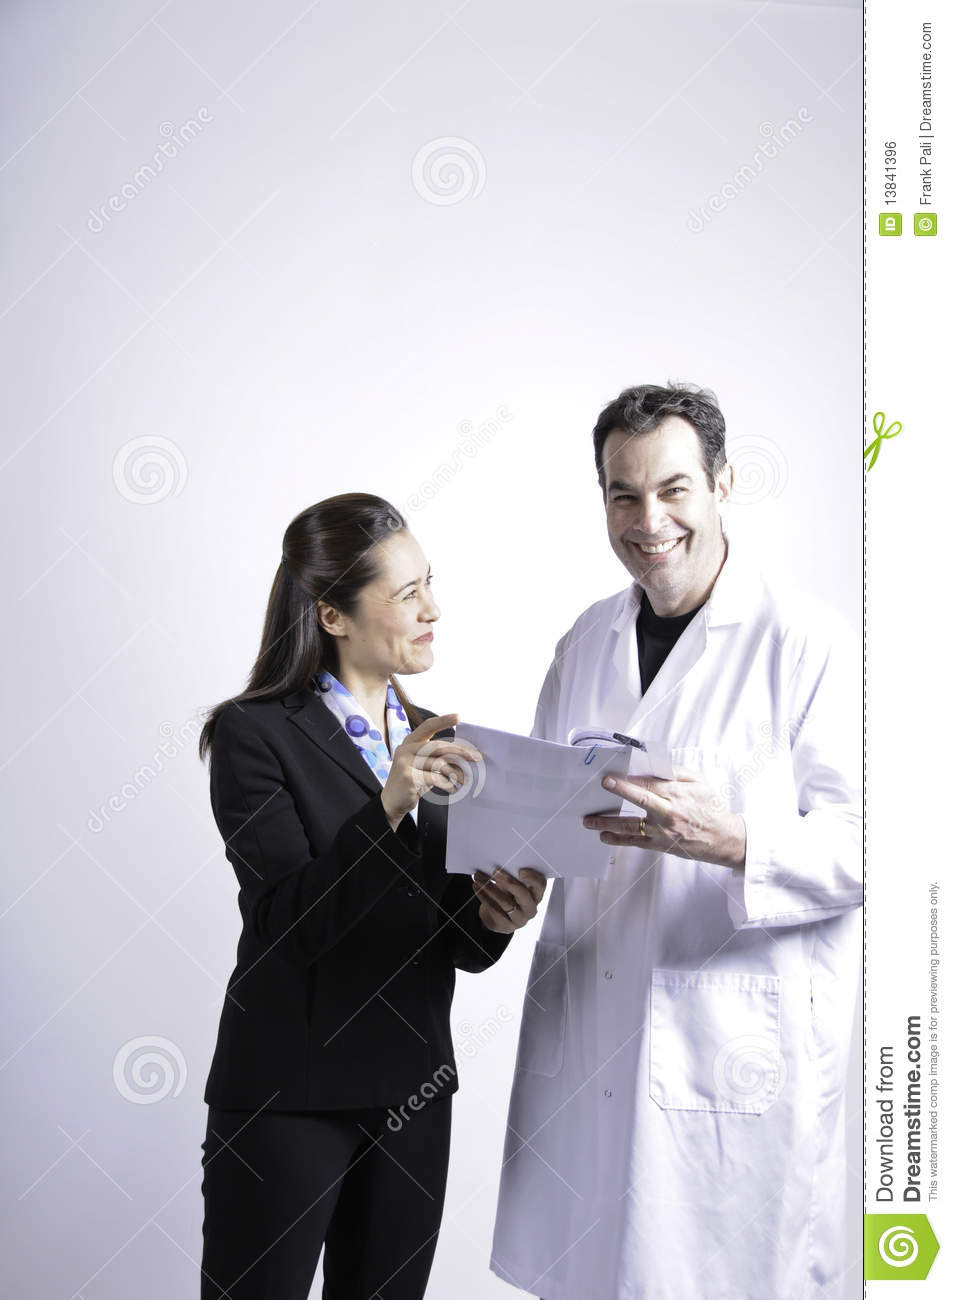 Happy professional people stock photo Image of adult